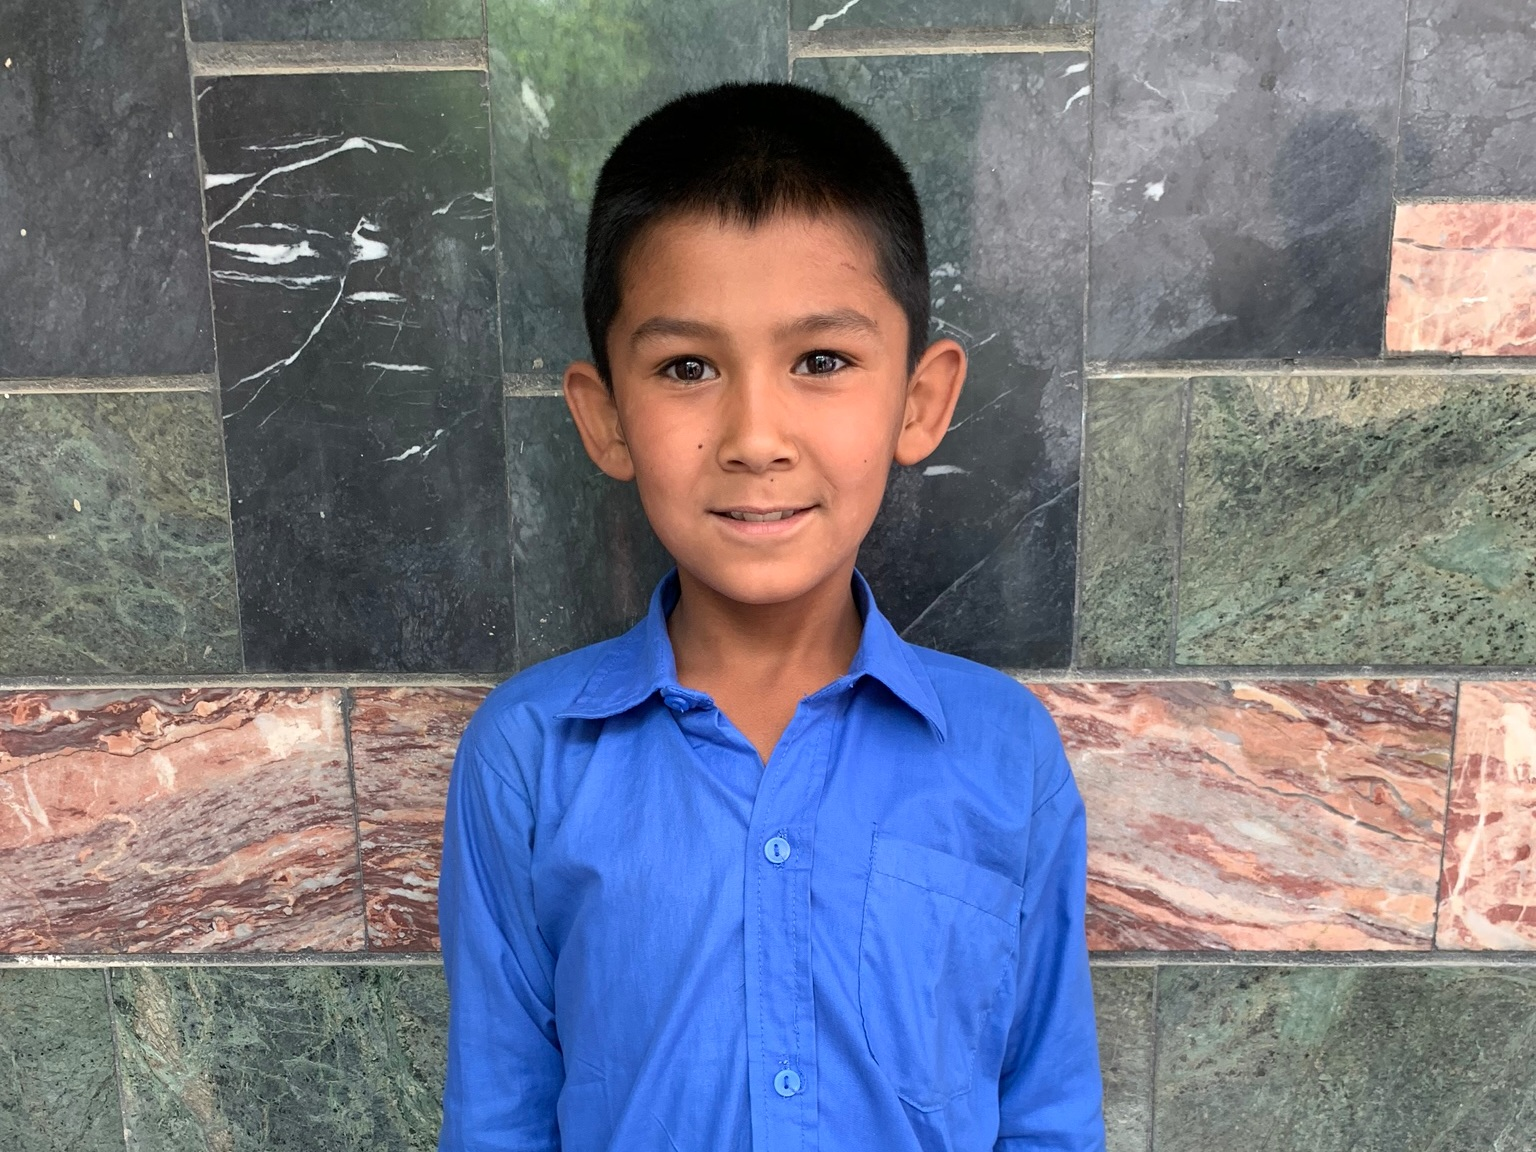 Salha, Age 8 - Salha has 3 siblings. His mother does not have work at this time and his father is a shopkeeperBE SALAH'S PARTNER>